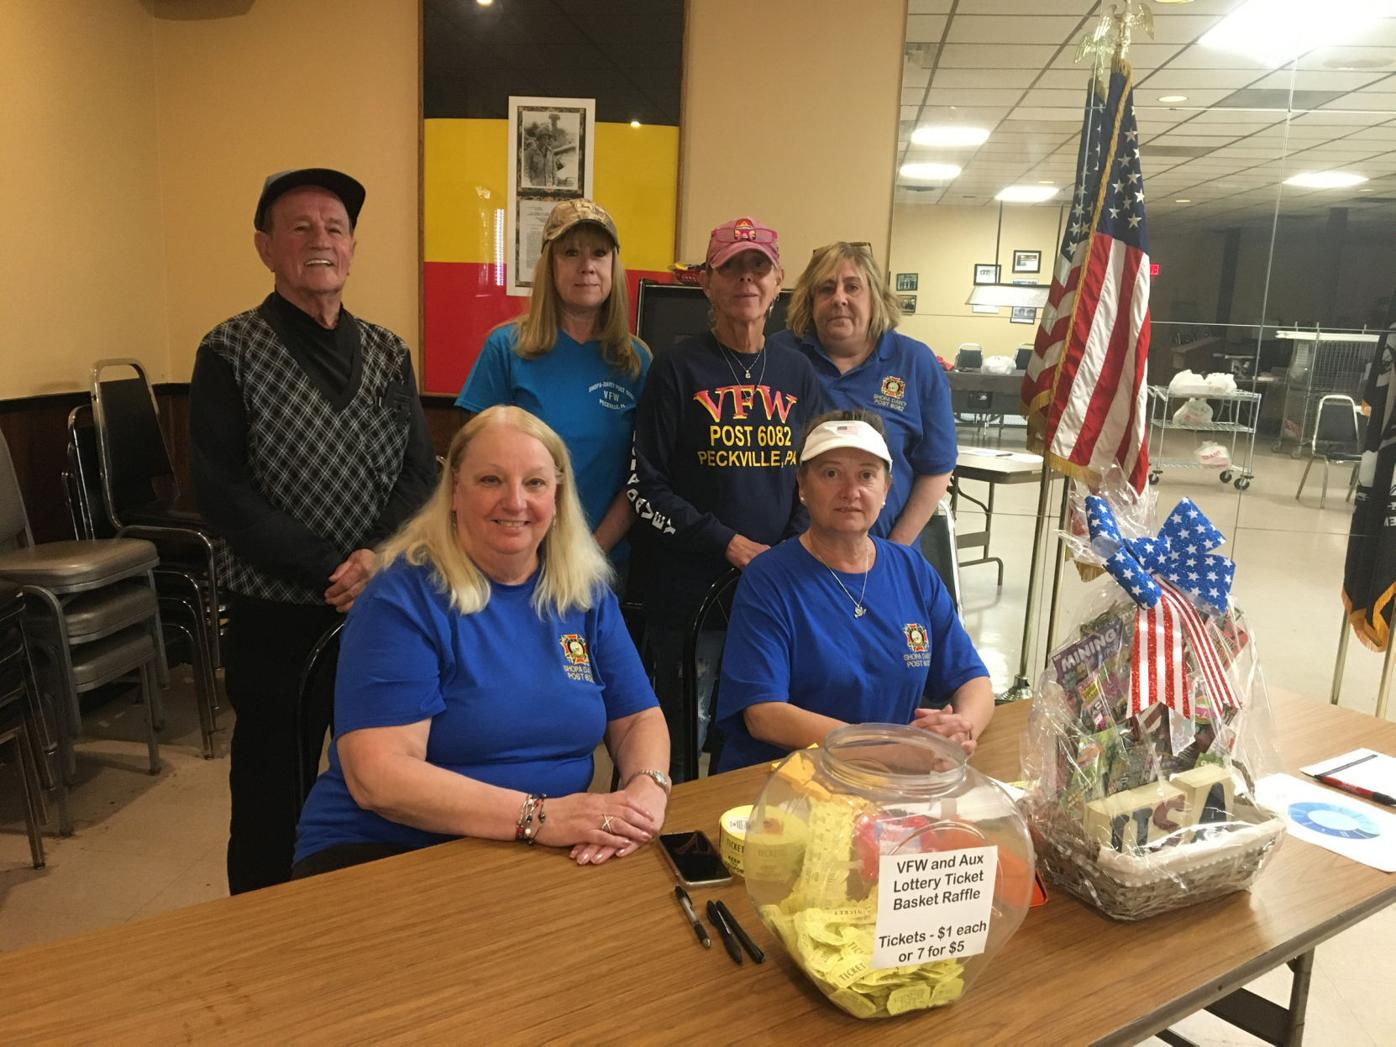 The Lottery event also featured a lottery ticket basket raffle to benefit VFW Post 6082. Seated from left, Janet Sienkiewicz and Leslie Grunza, president of the Auxiliary. Standing from left, Steve Grassentti, Carman Caliber, Debbie, Litcho and Mary Merryfield.